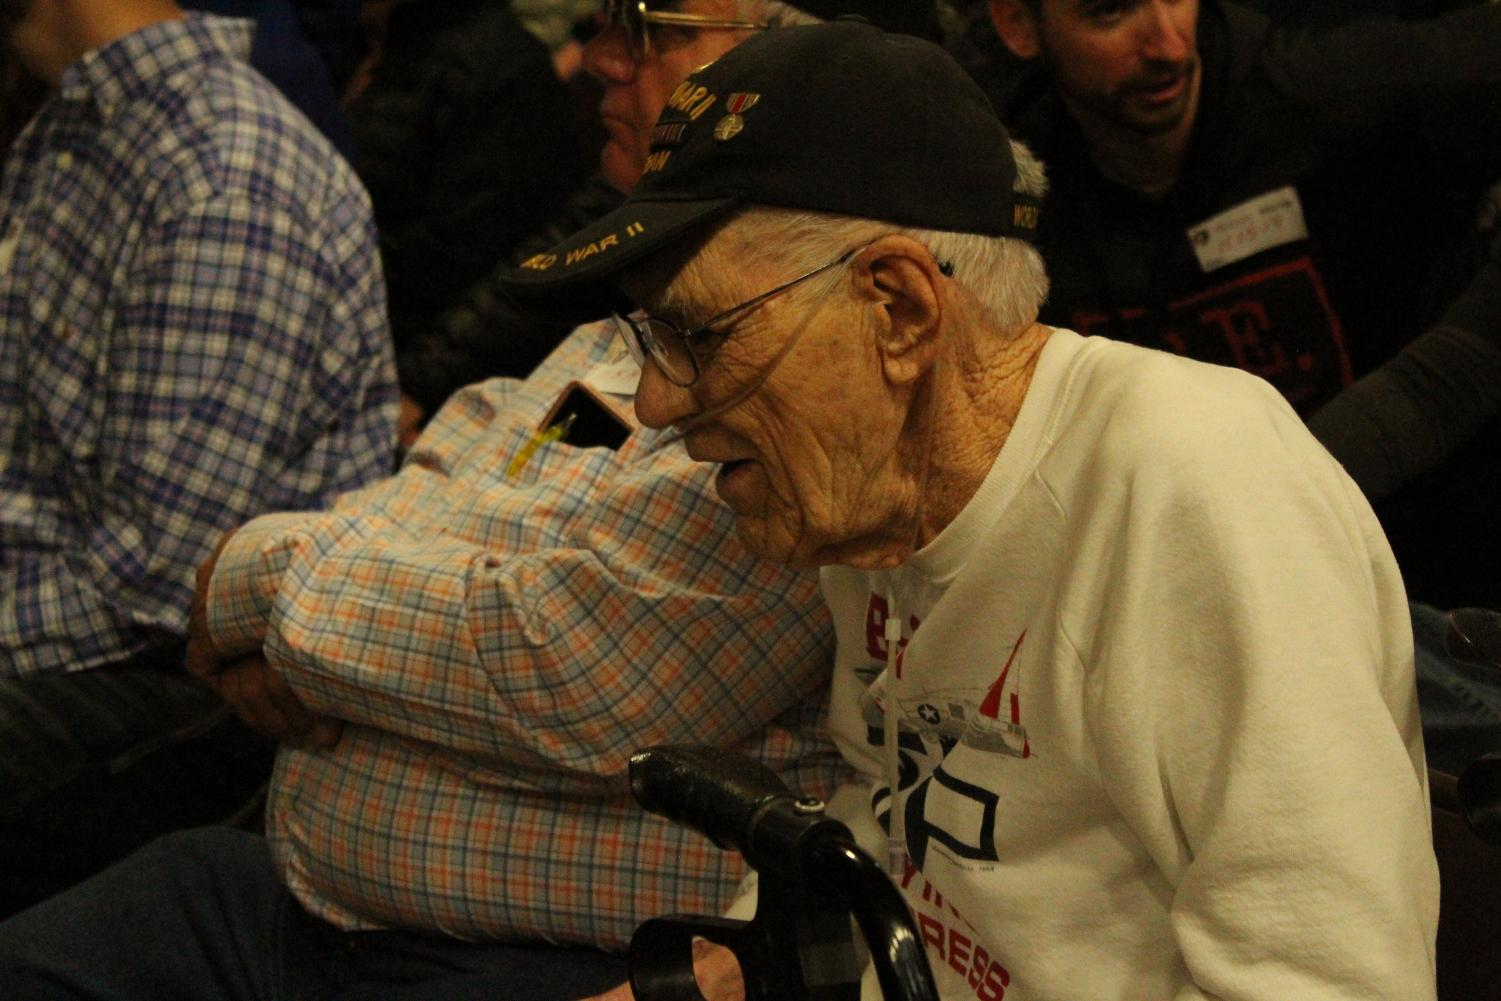 We+were+lucky+enough+to+have+a+WWII+Veteran+join+us+today.+Mr.+Hugh+McGinty+served+in+the+Air+Force+for+22+years.